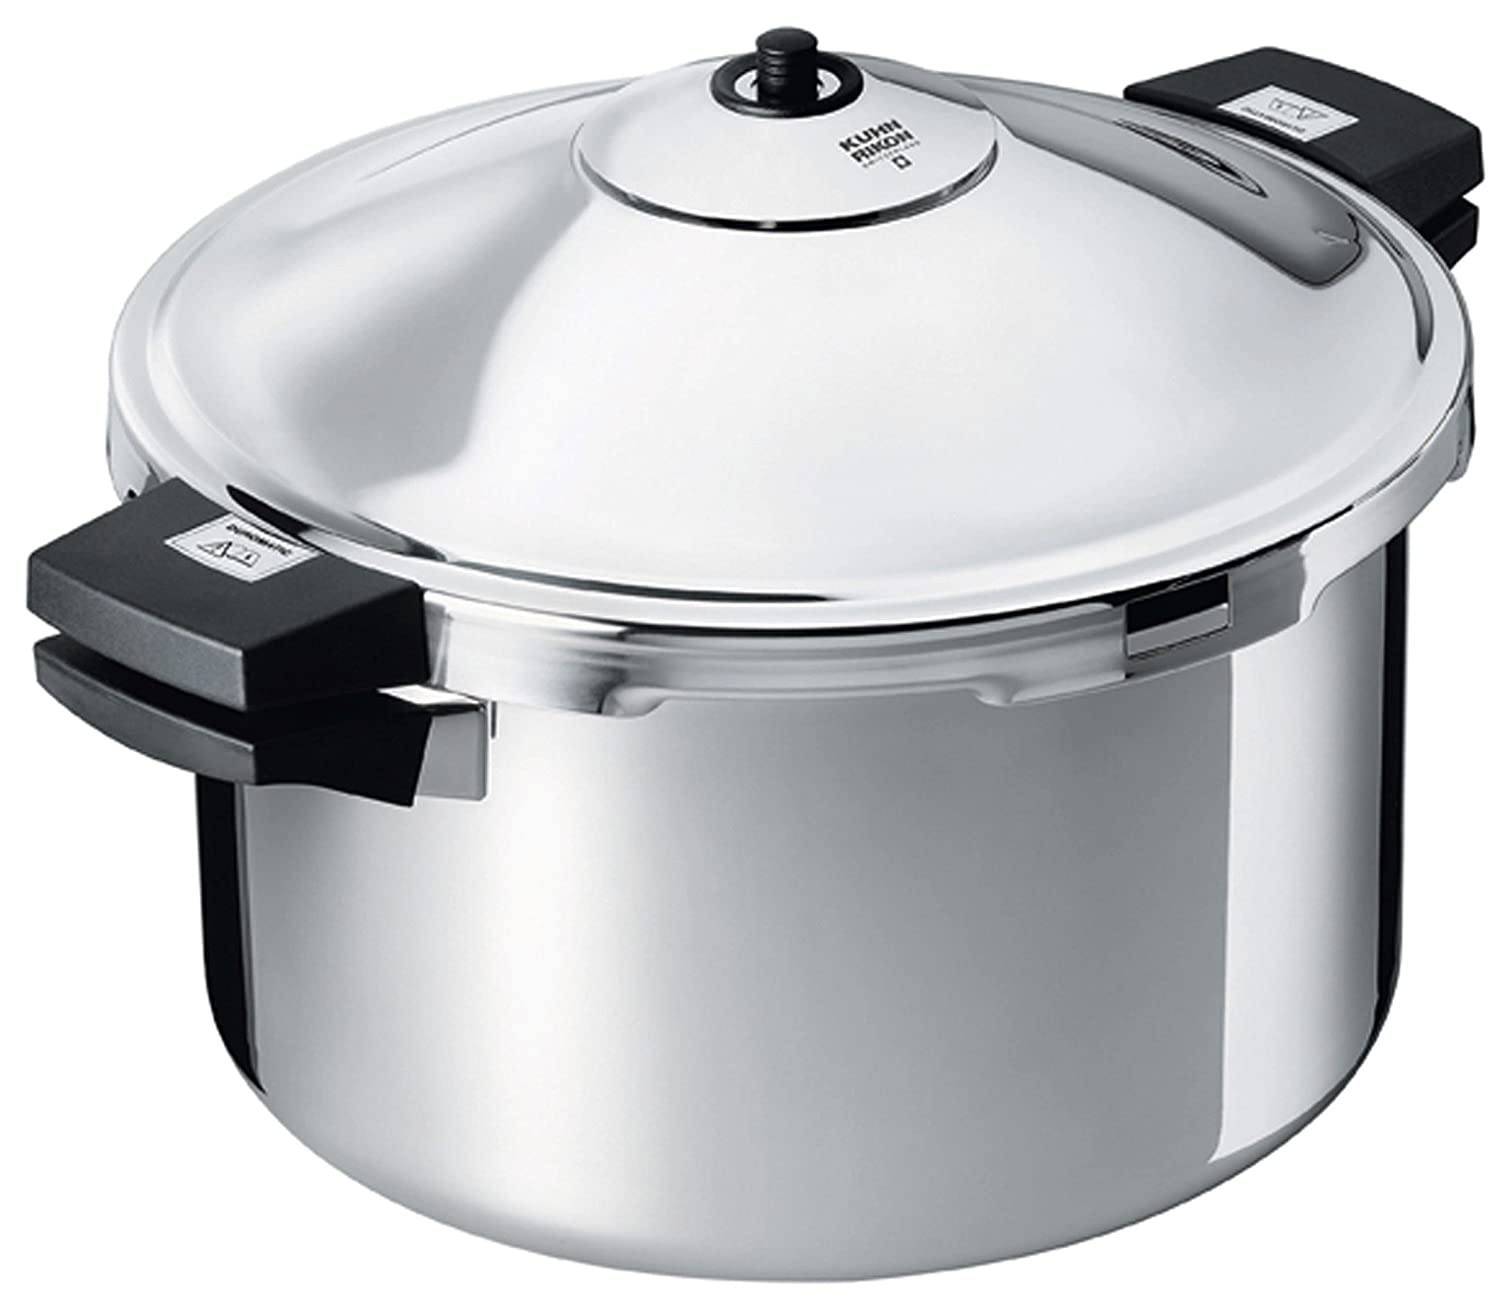 Kuhn Rikon Duromatic Hotel Stainless Steel Pressure Cooker with Side Grips, 8 Litre / 28 cm